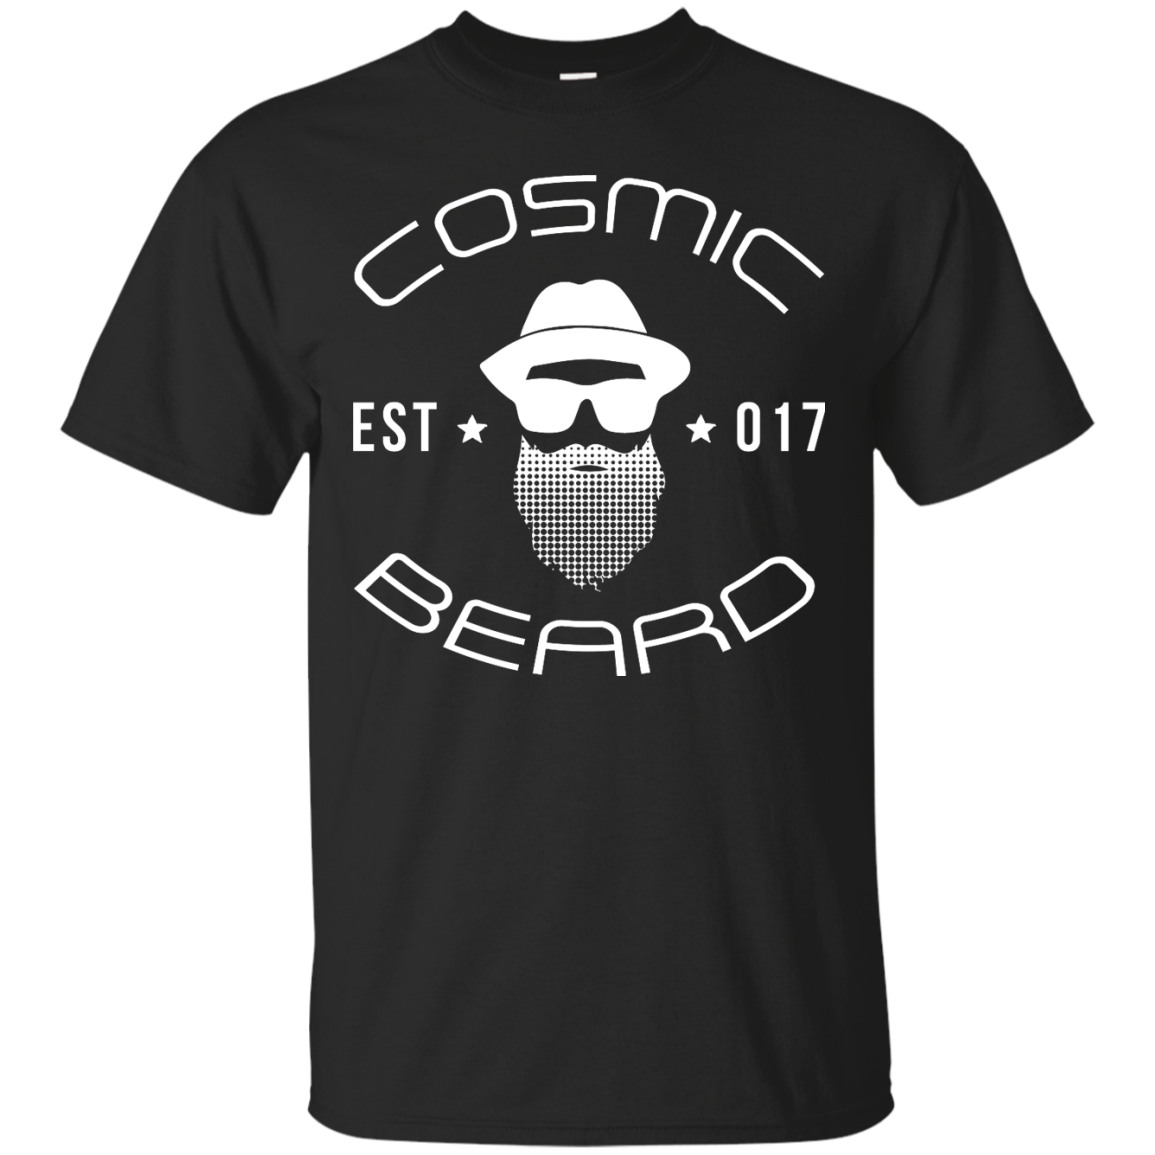 Cosmic Beard Branded T-Shirt with White Logo